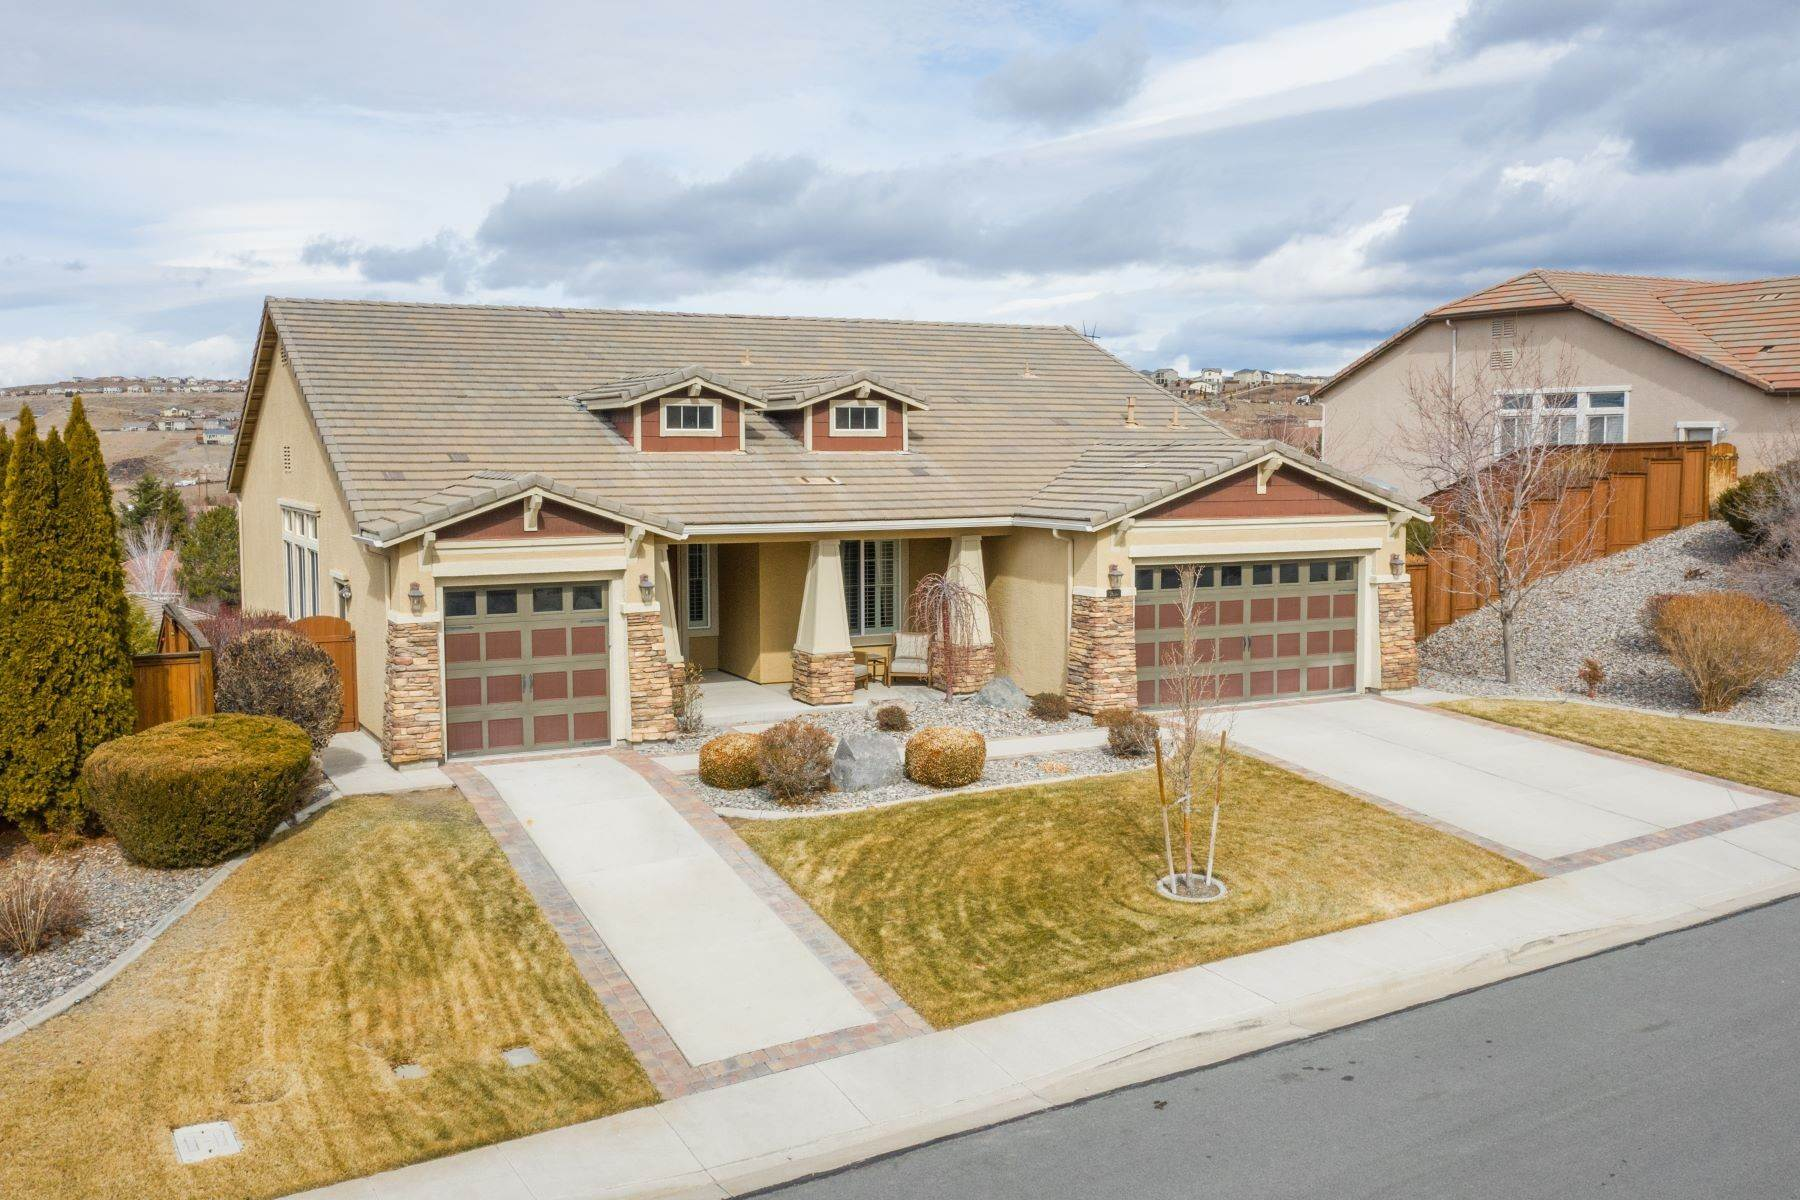 Single Family Homes for Active at Panoramic Views, Walkout Basement 2630 Novara Ct Sparks, Nevada 89434 United States